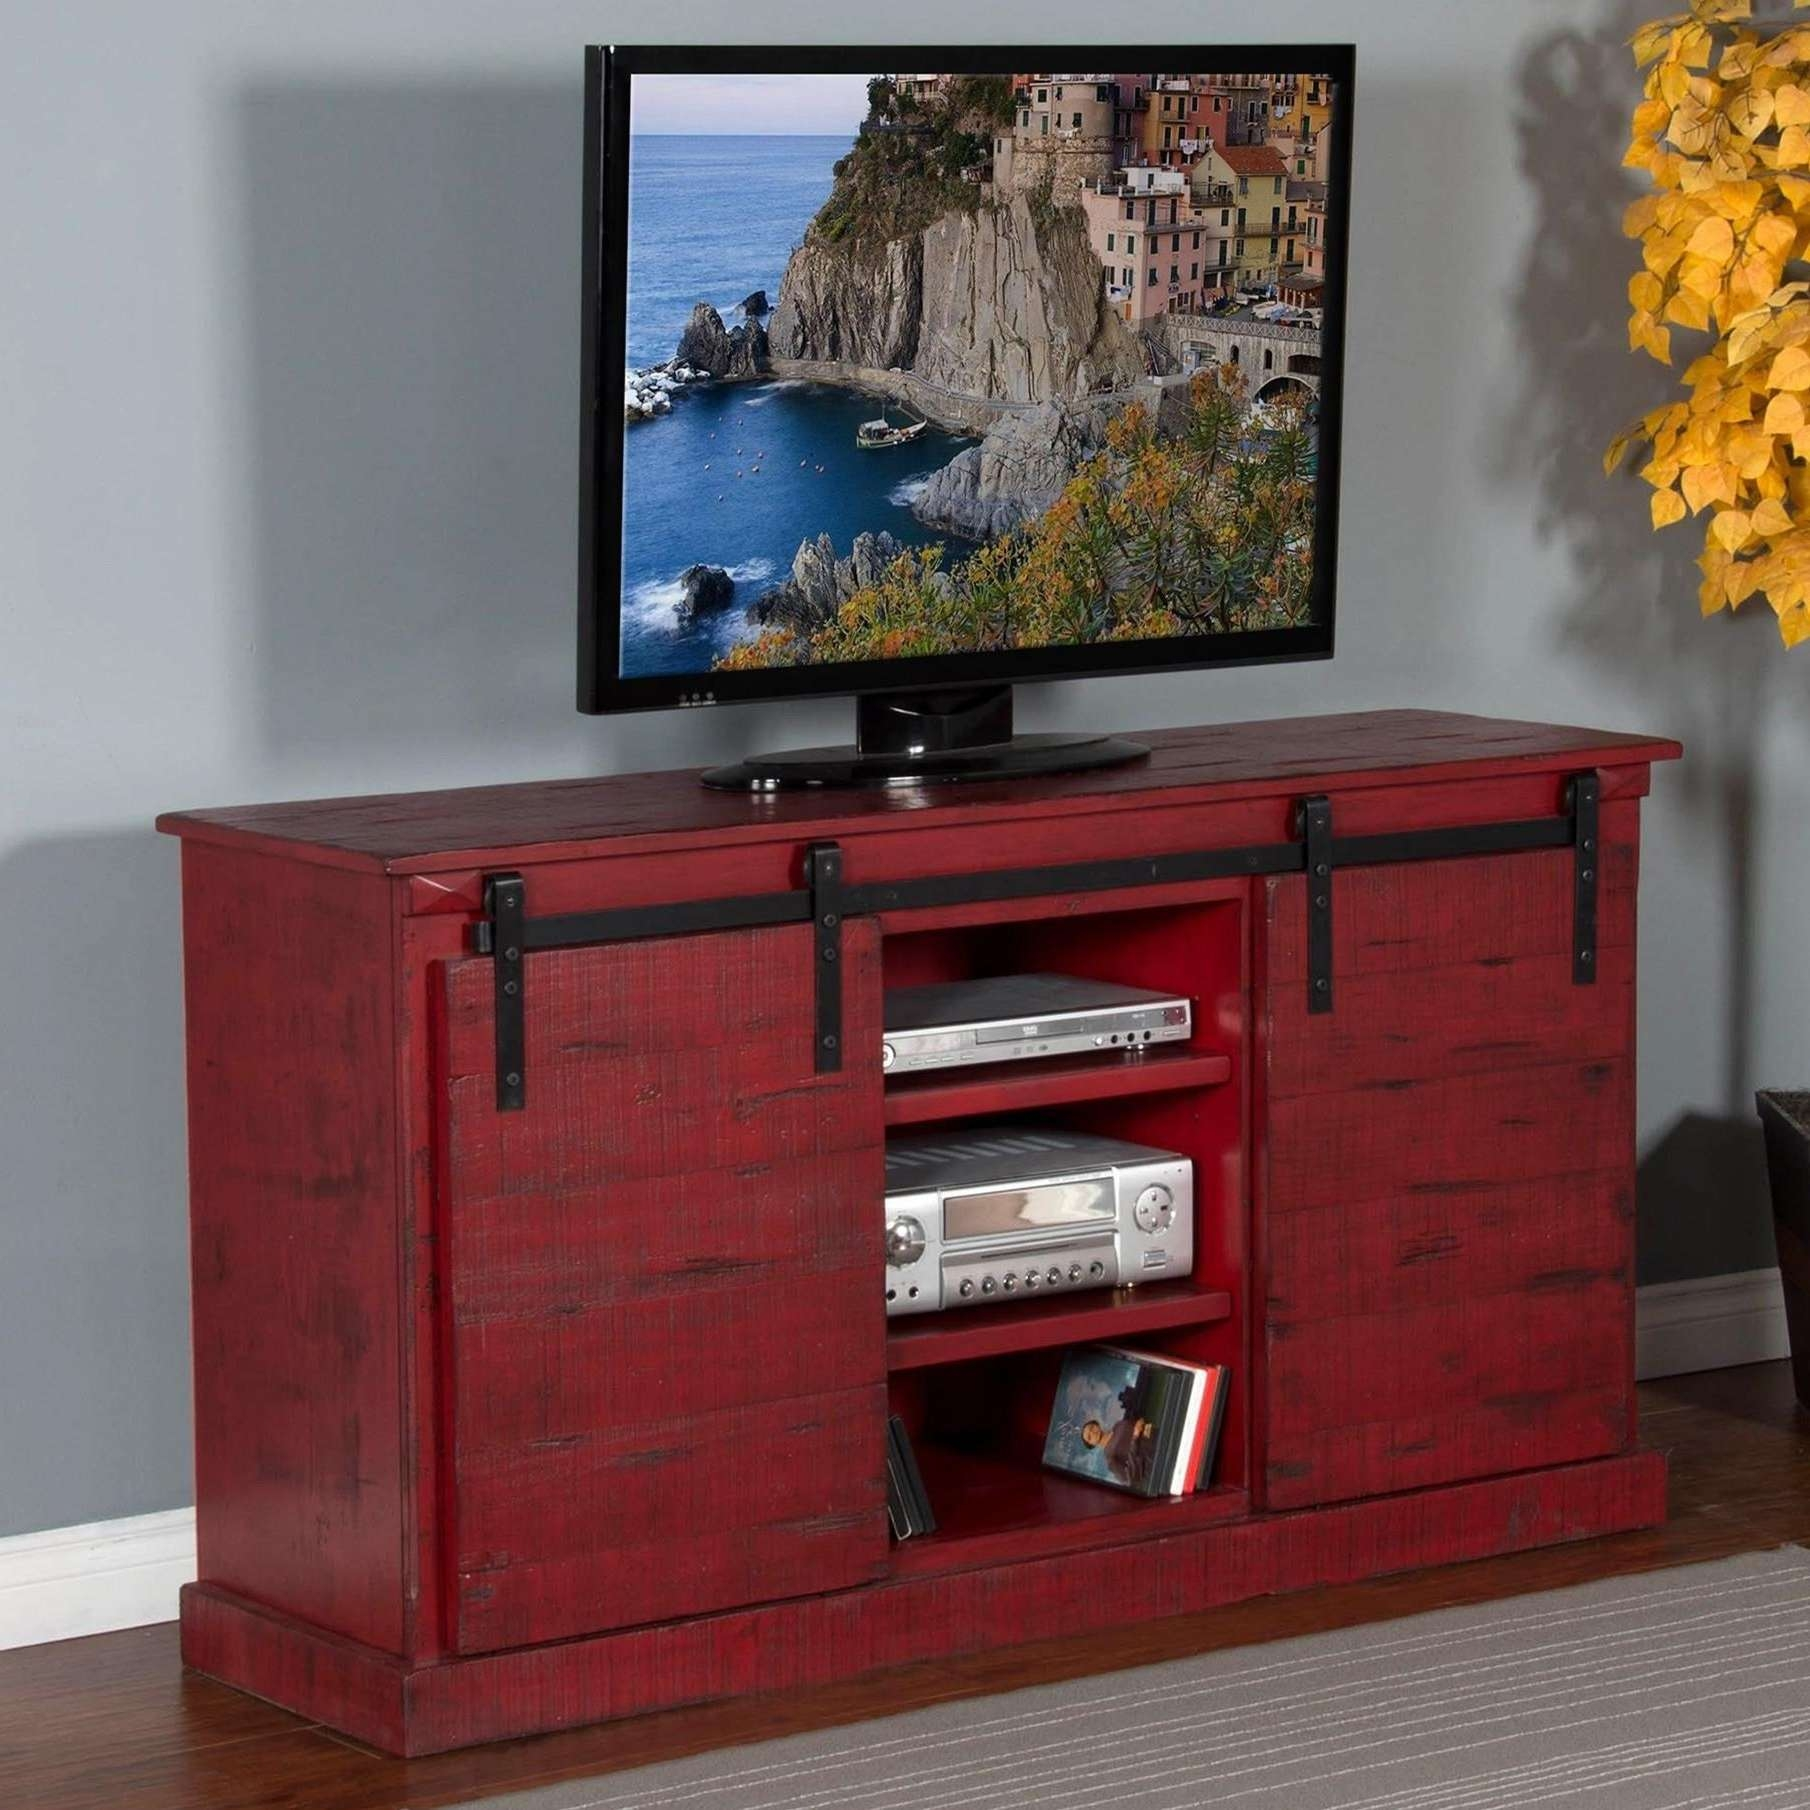 Shop Tv Stands | Wolf And Gardiner Wolf Furniture Intended For Rustic Red Tv Stands (View 3 of 20)